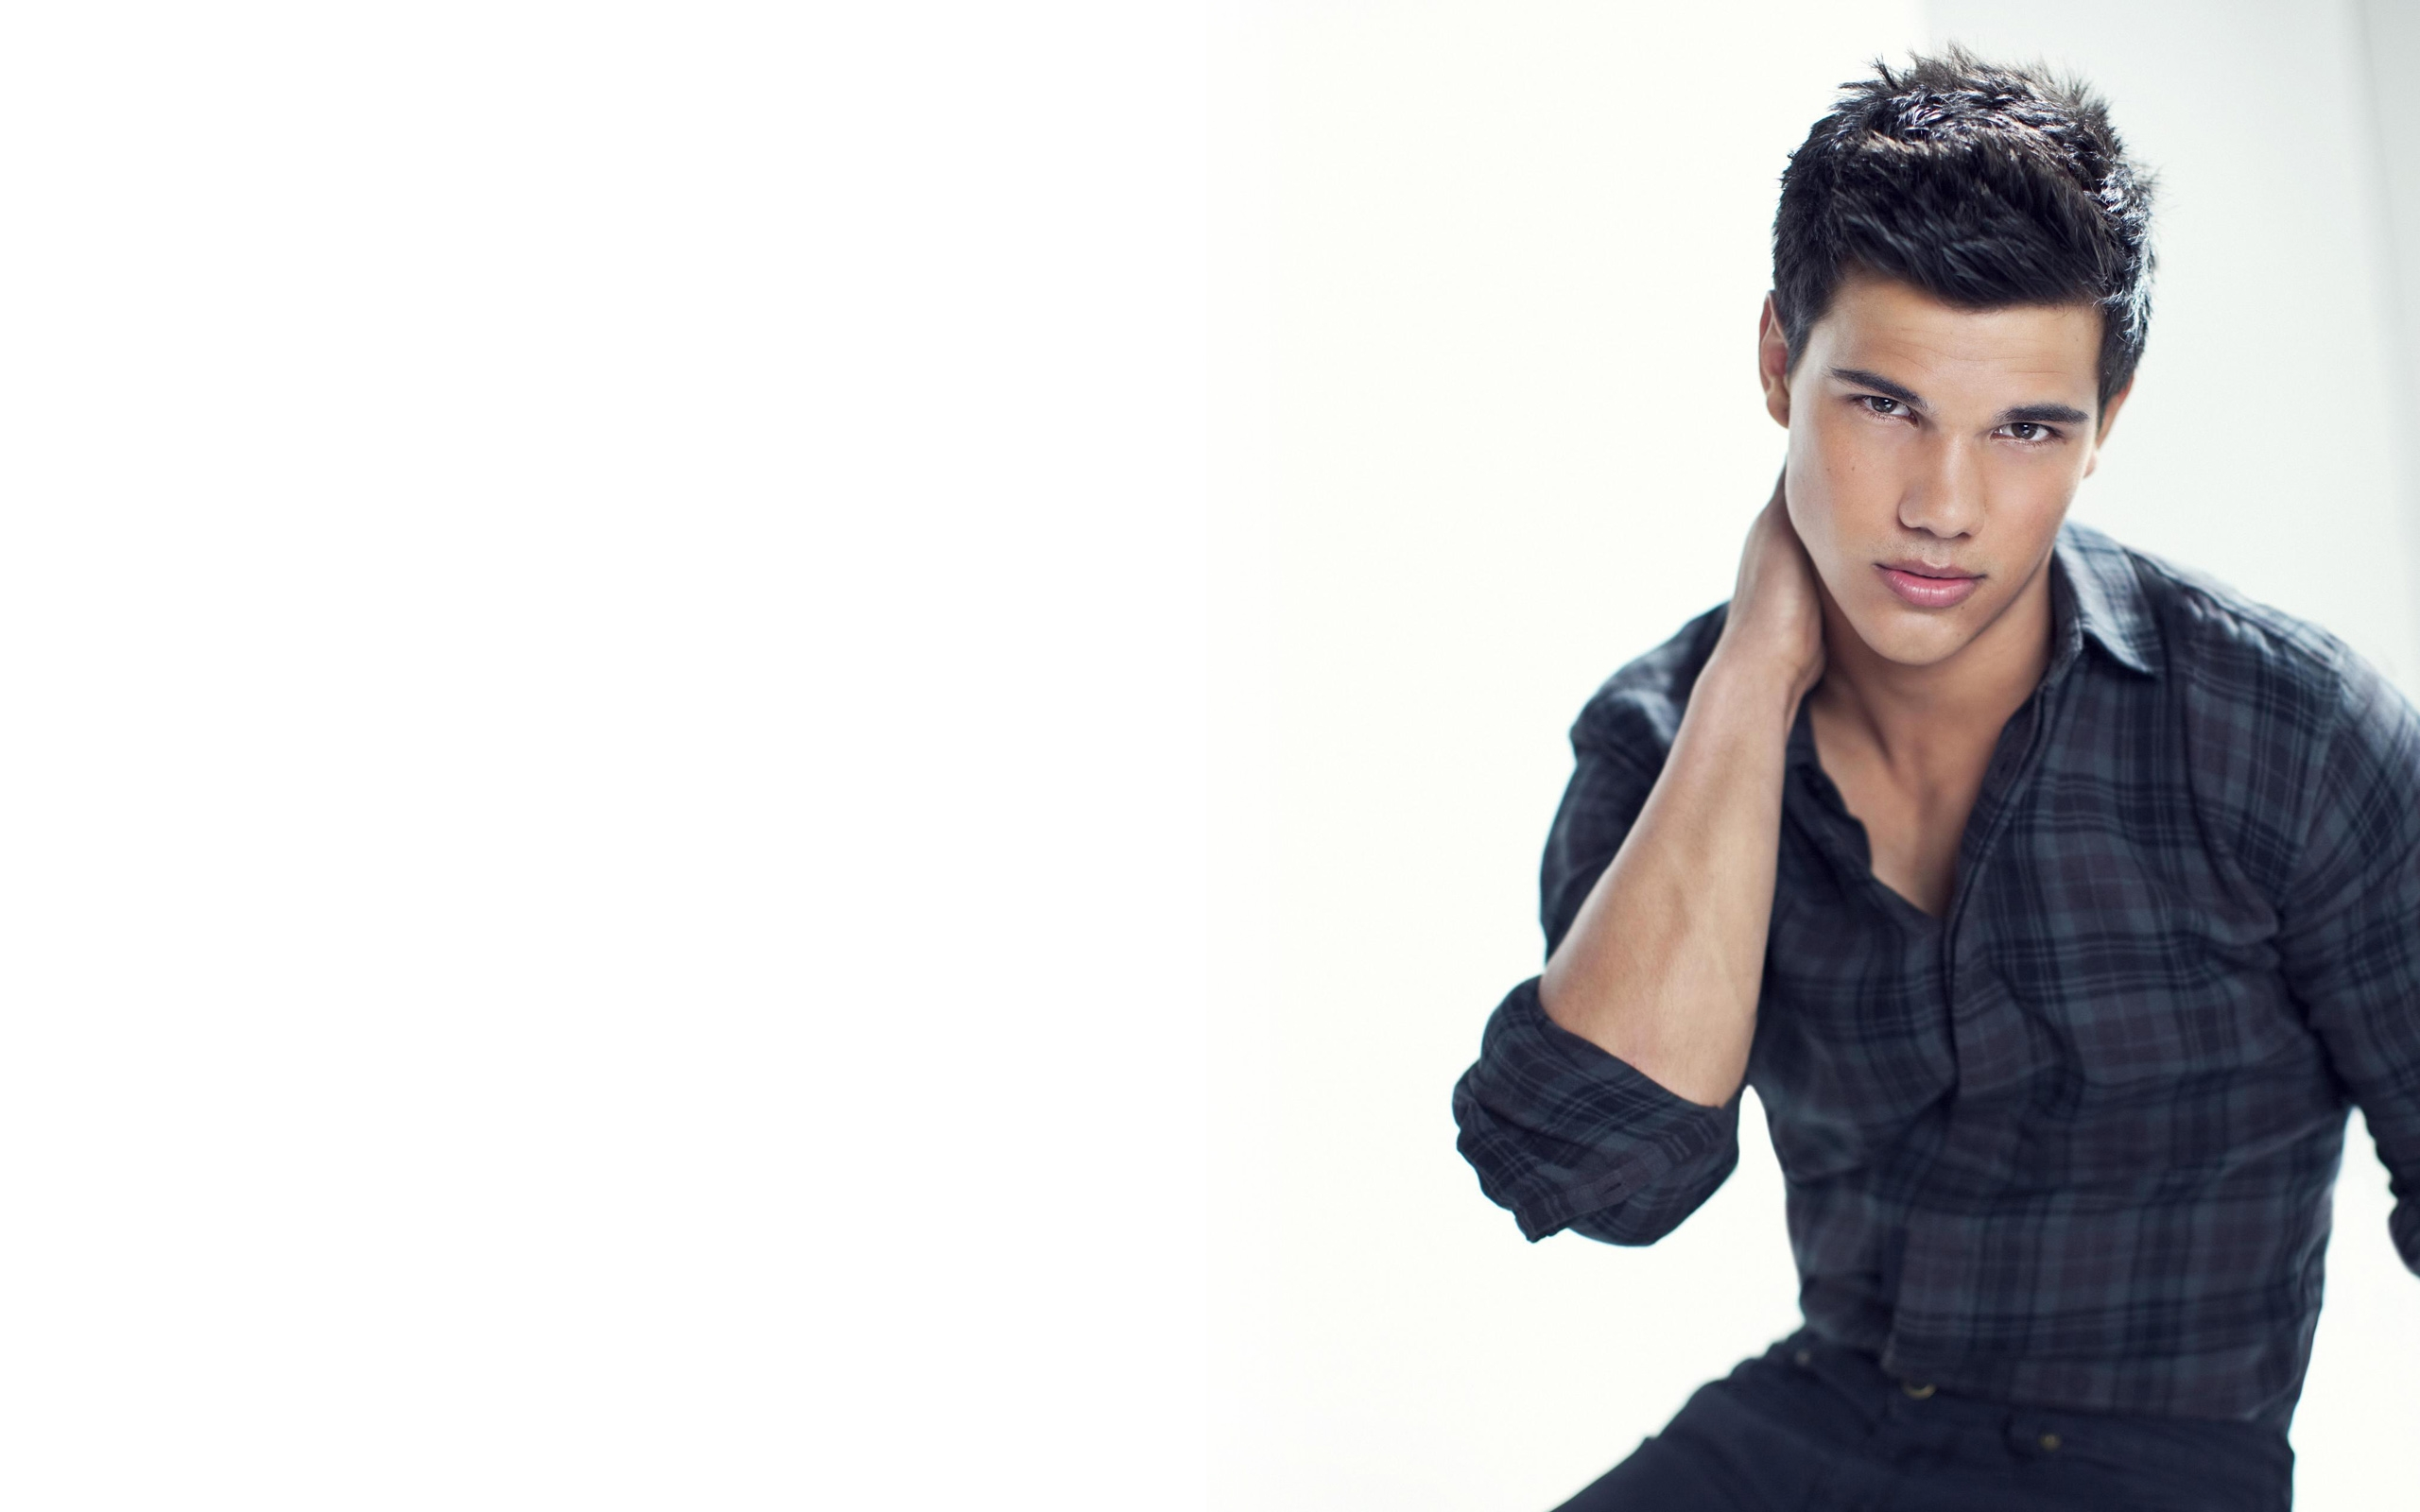 Taylor Lautner Wallpapers High Resolution And Quality Download